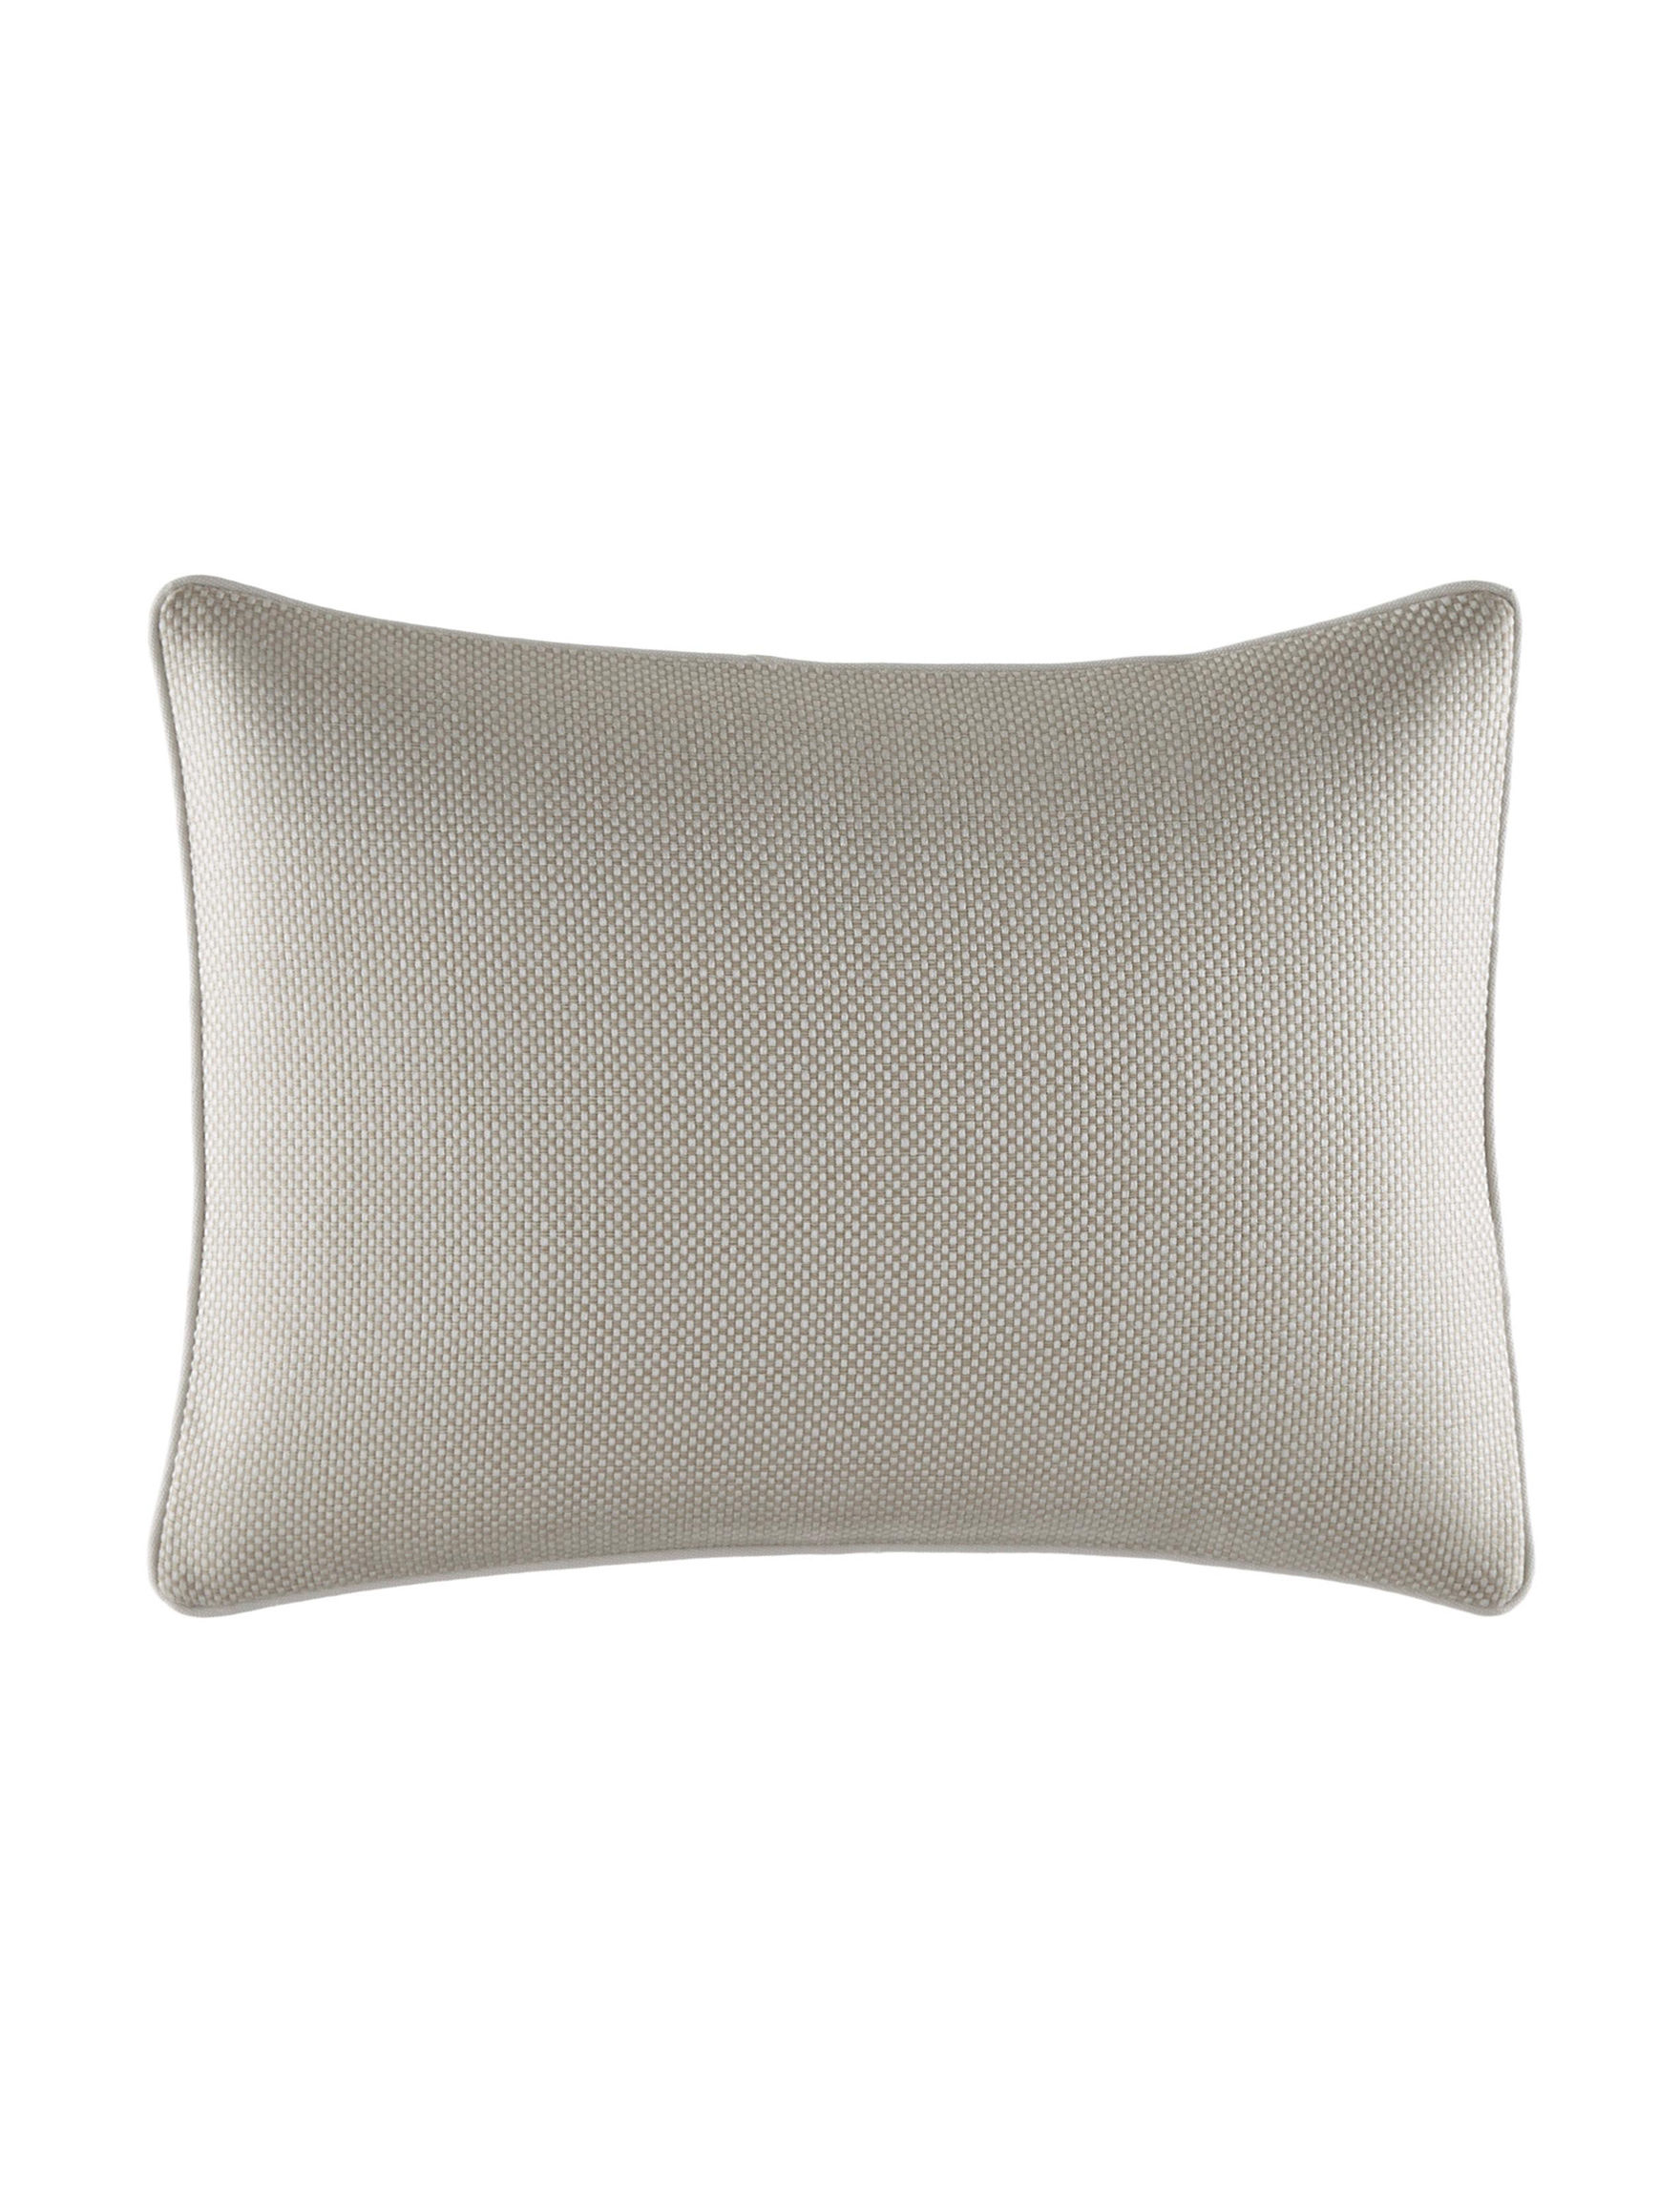 Tommy Bahama Beige Decorative Pillows